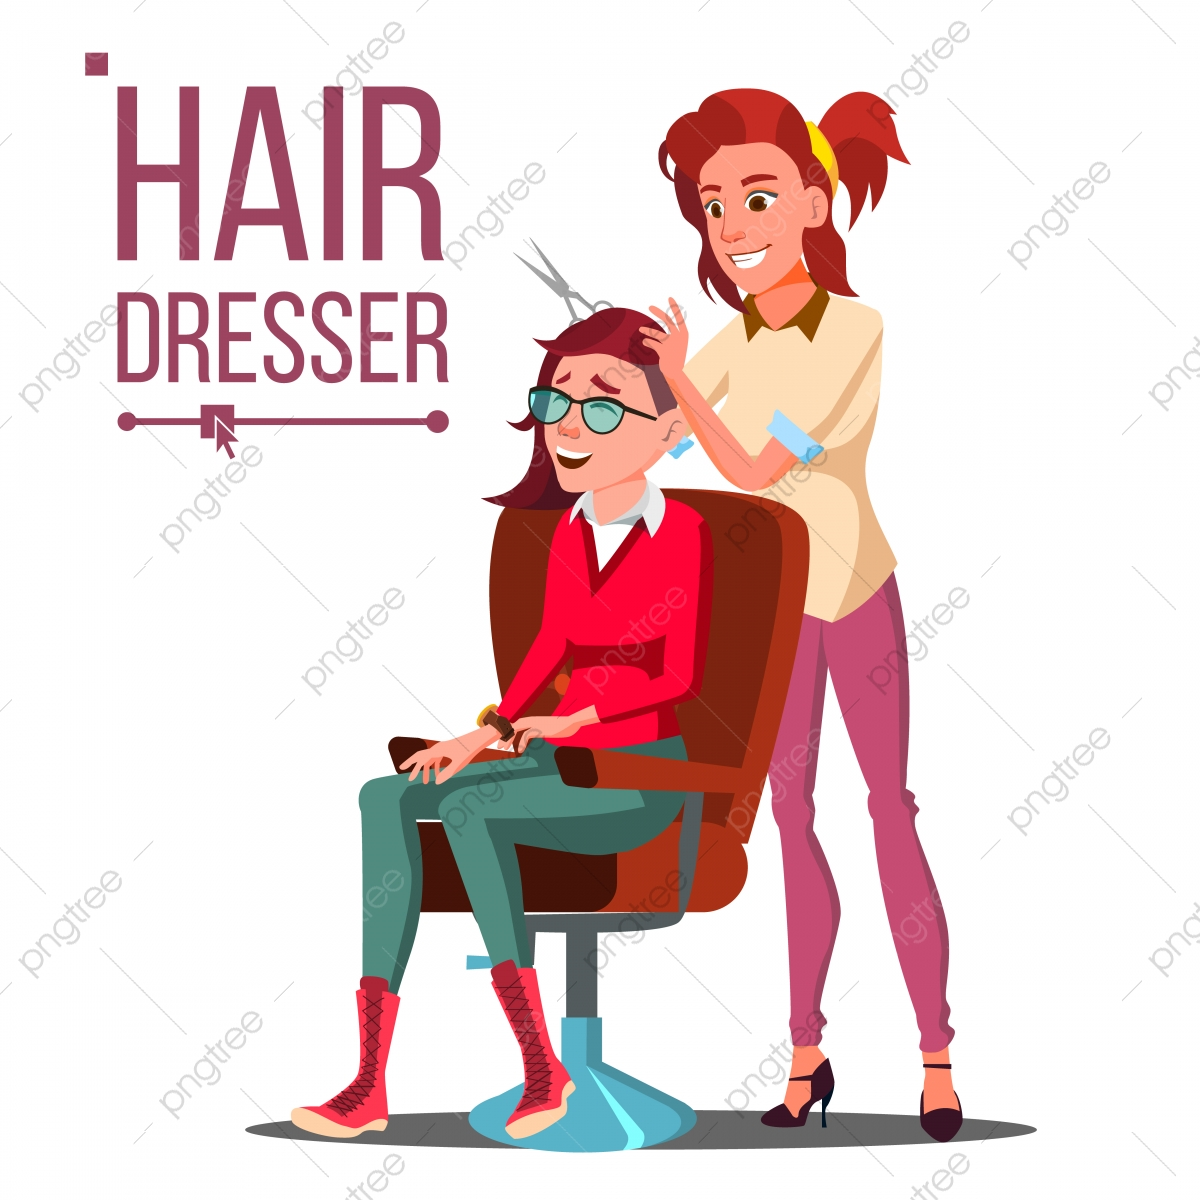 Hairdresser And Woman Vector Beauty Salon Hairbrush Haircut Styling Isolated Flat Cartoon Illustration Concept Decorative Element Png And Vector With Transparent Background For Free Download